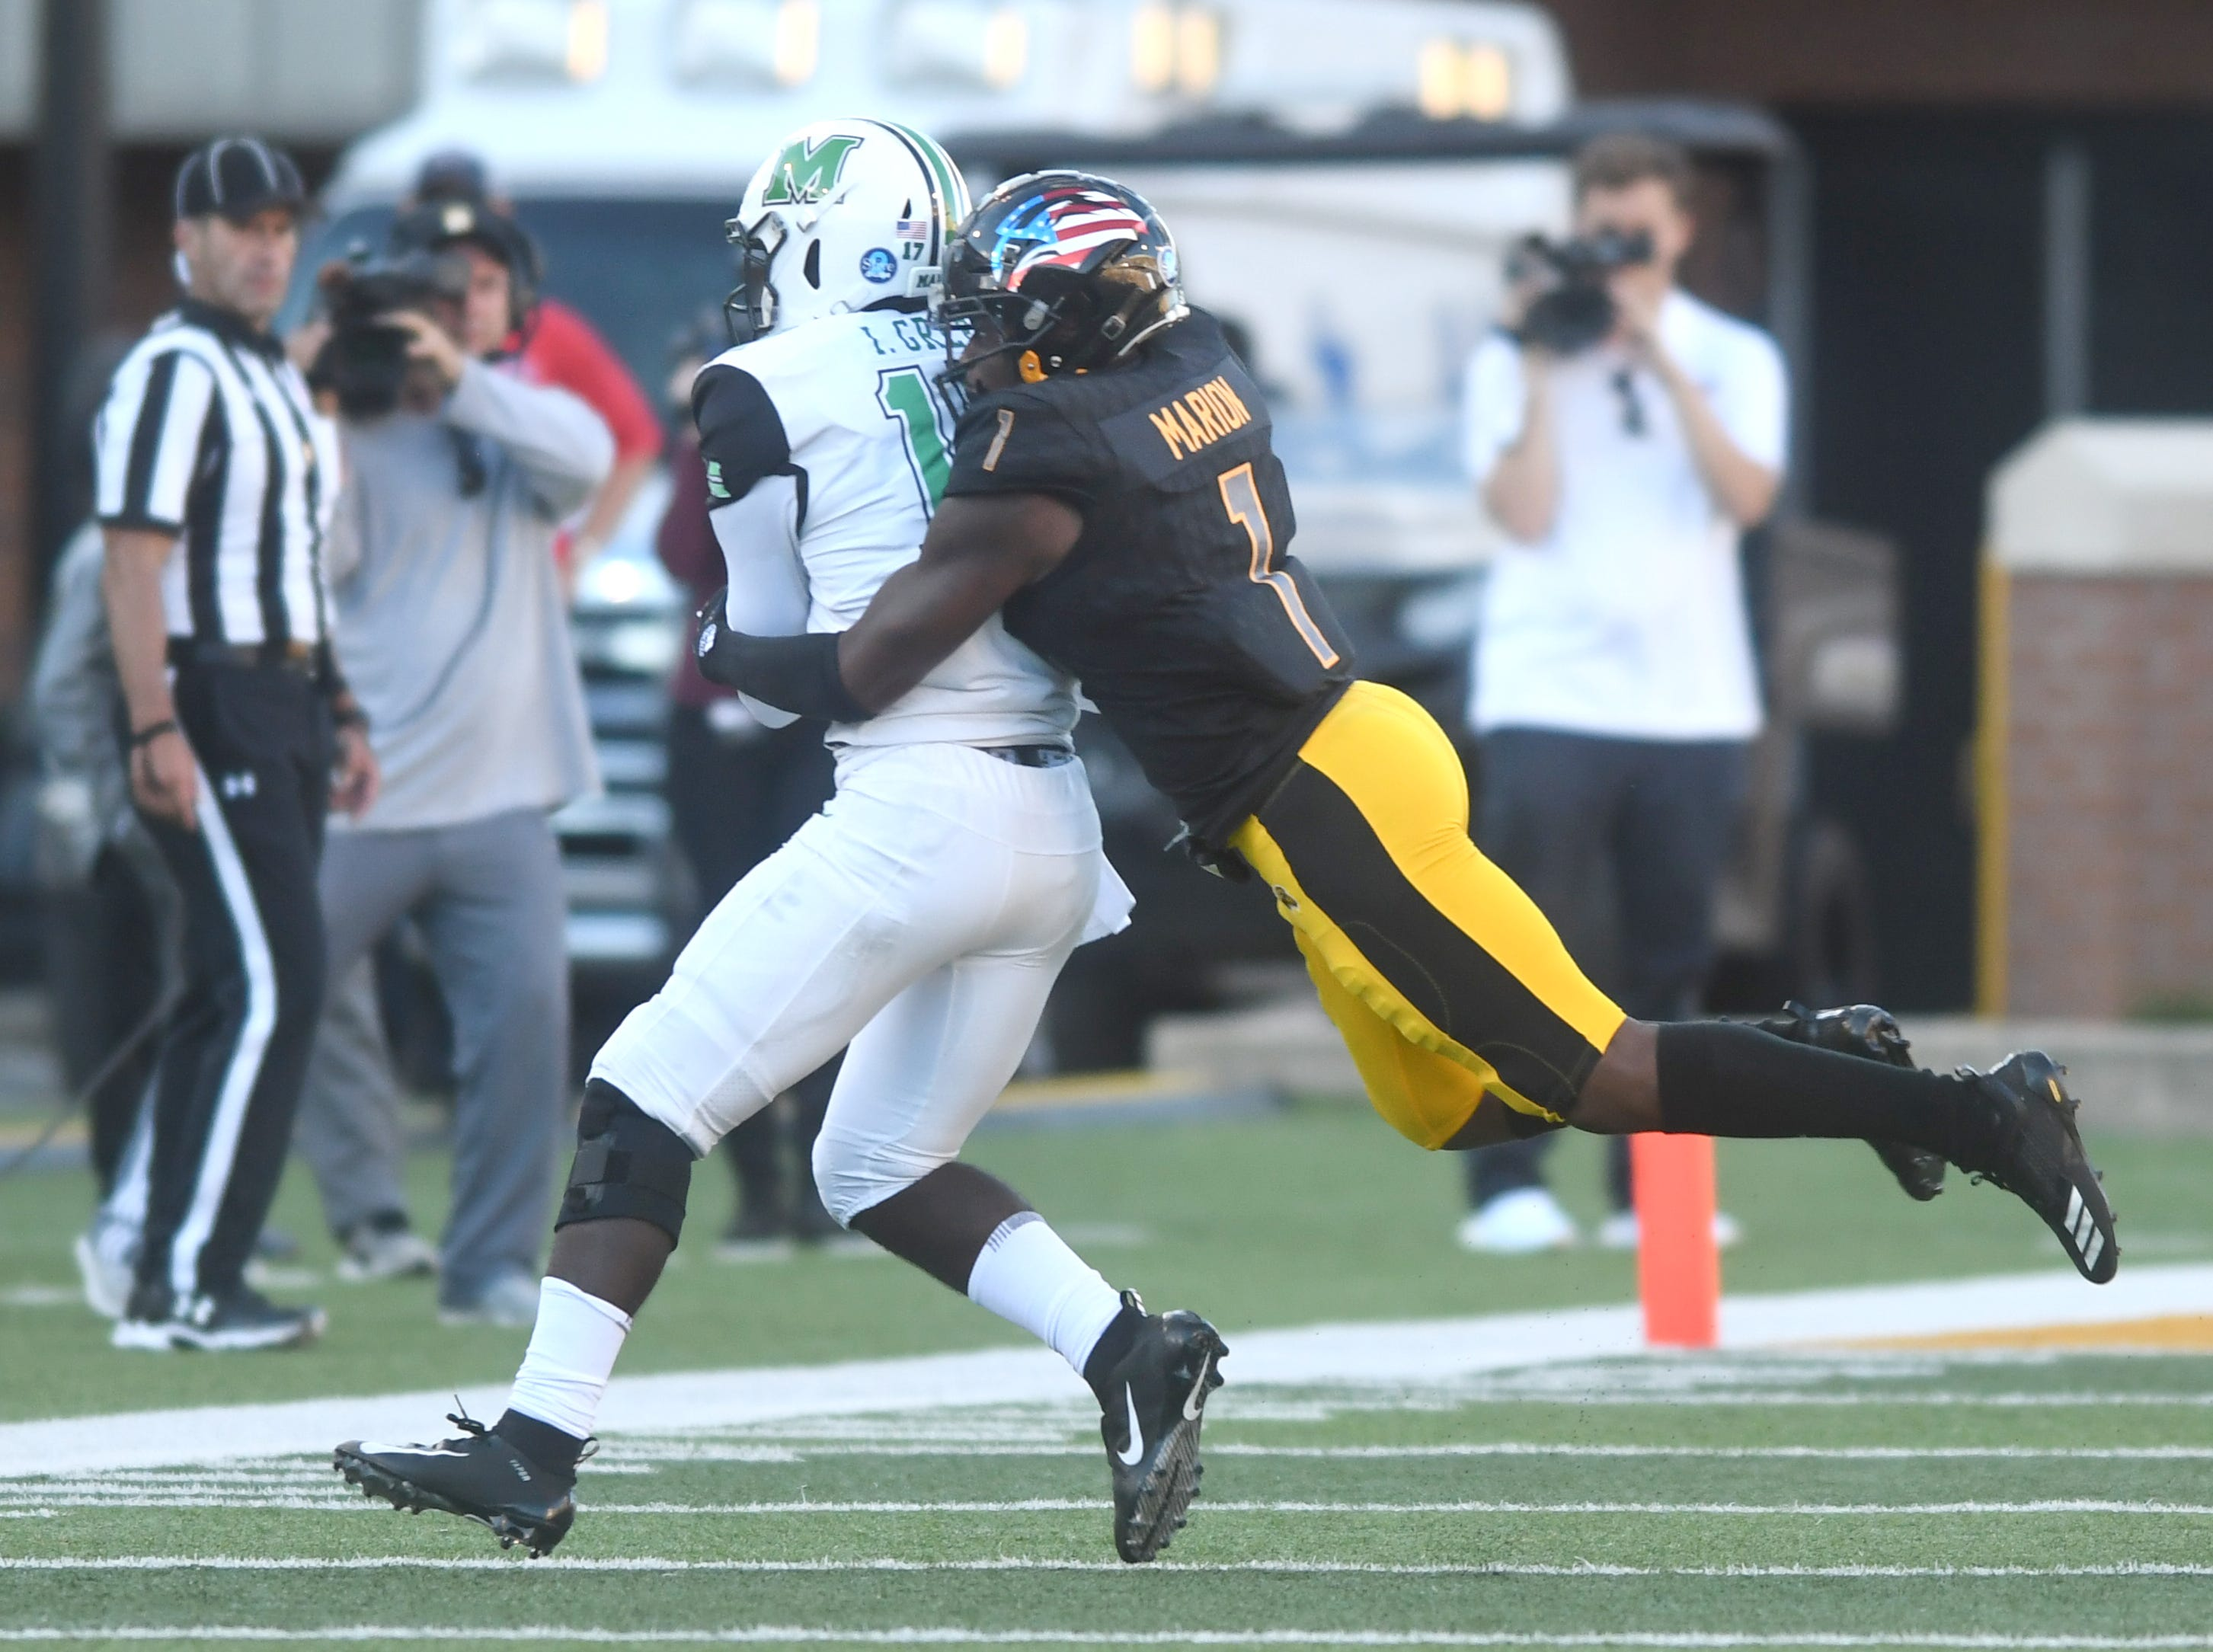 Southern Miss defensive back Xavier Marion makes a tackle in a game against Marshall at M.M. Roberts Stadium on Saturday, November 3, 2018.